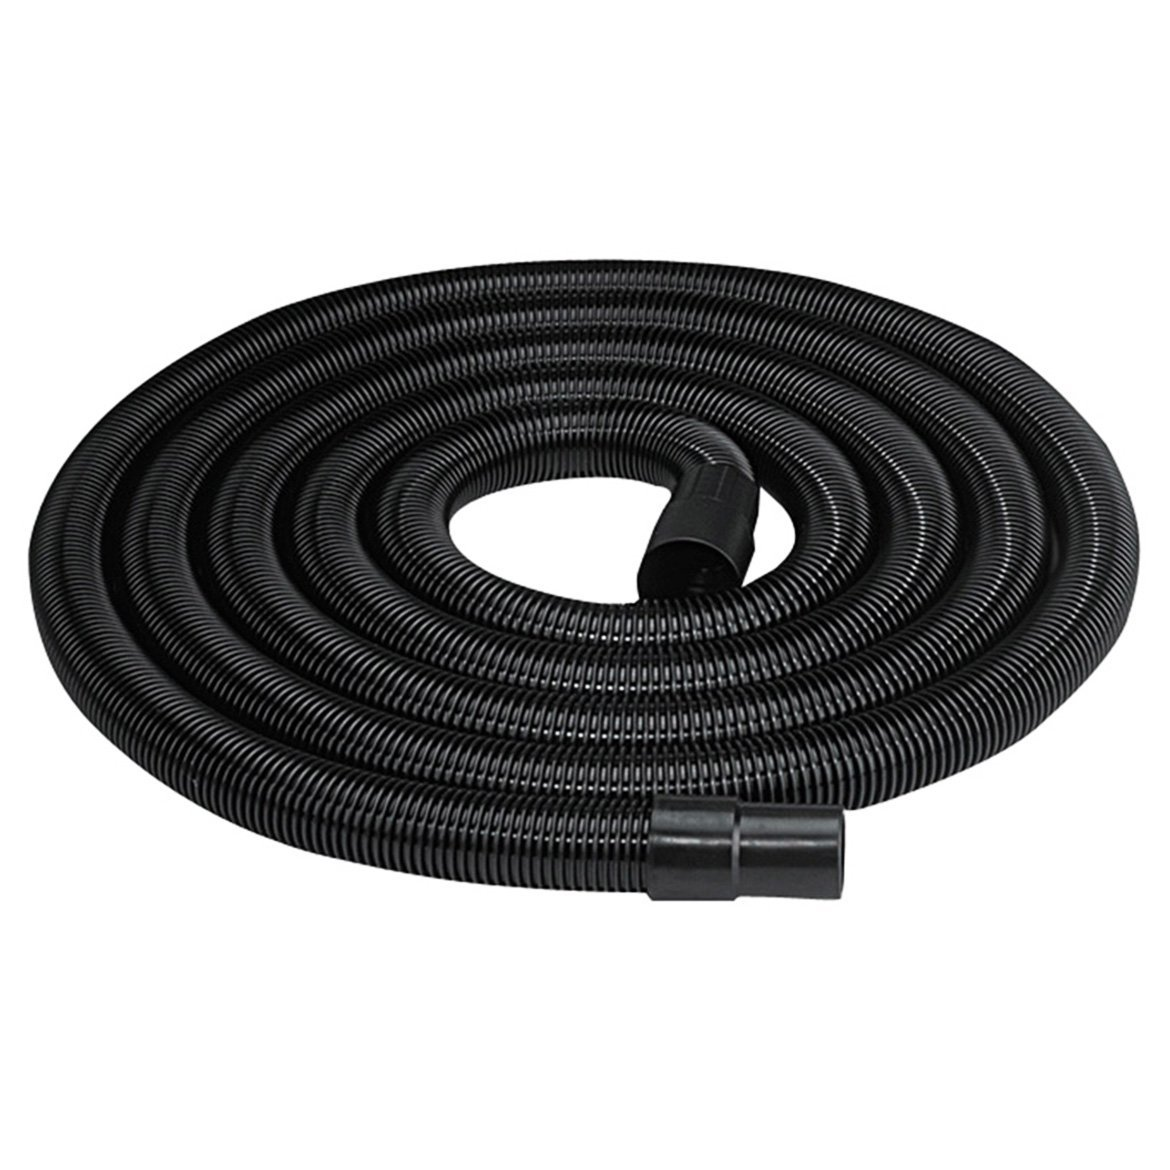 "1-1/2"" Polypropylene Accessories and Hoses Model Code: AB (part# 903-25-00)"